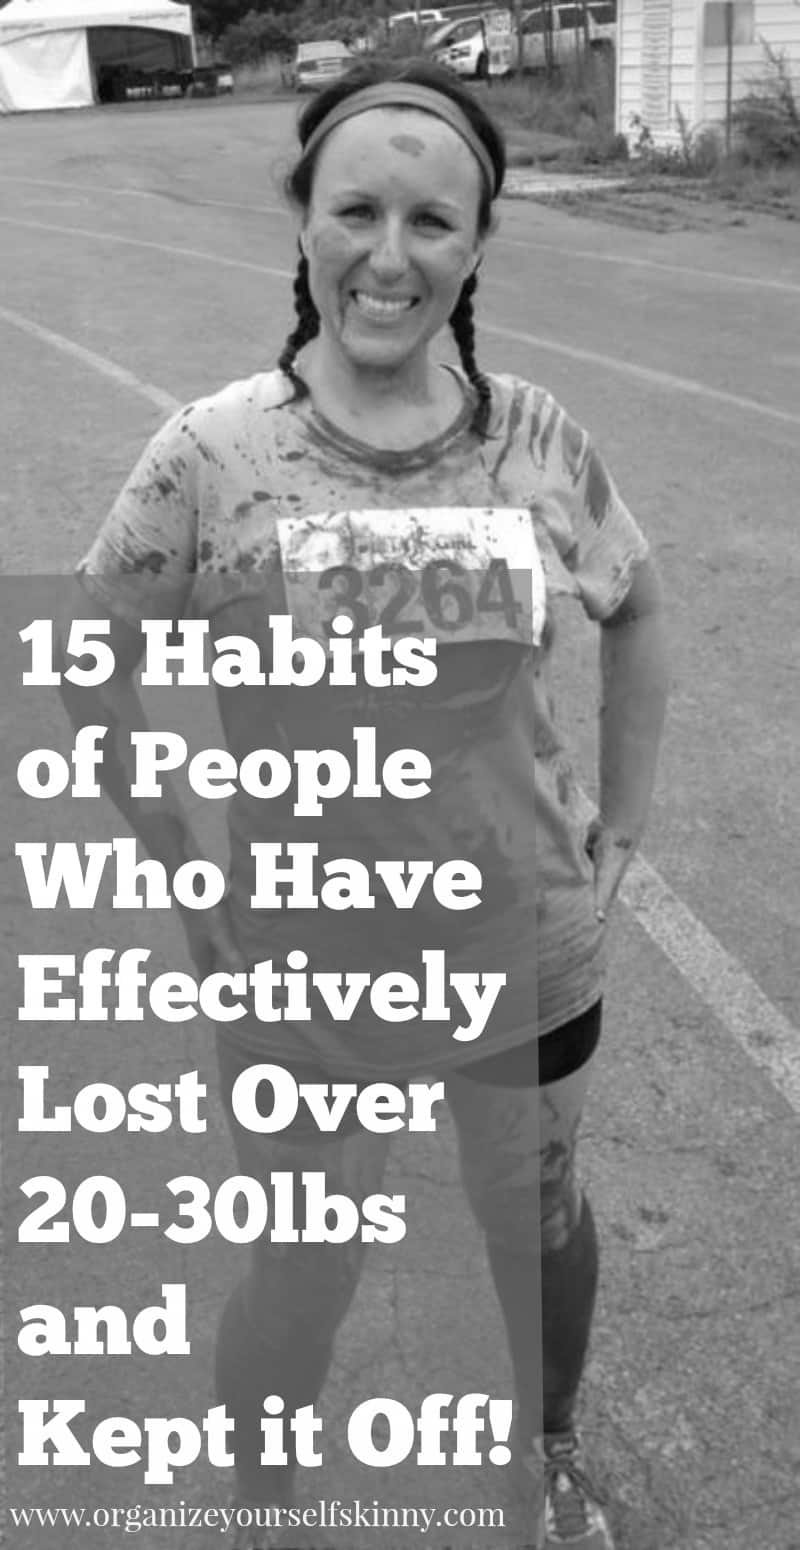 Discussion on this topic: 20 Bedtime Habits For Successful Weight Loss, 20-bedtime-habits-for-successful-weight-loss/